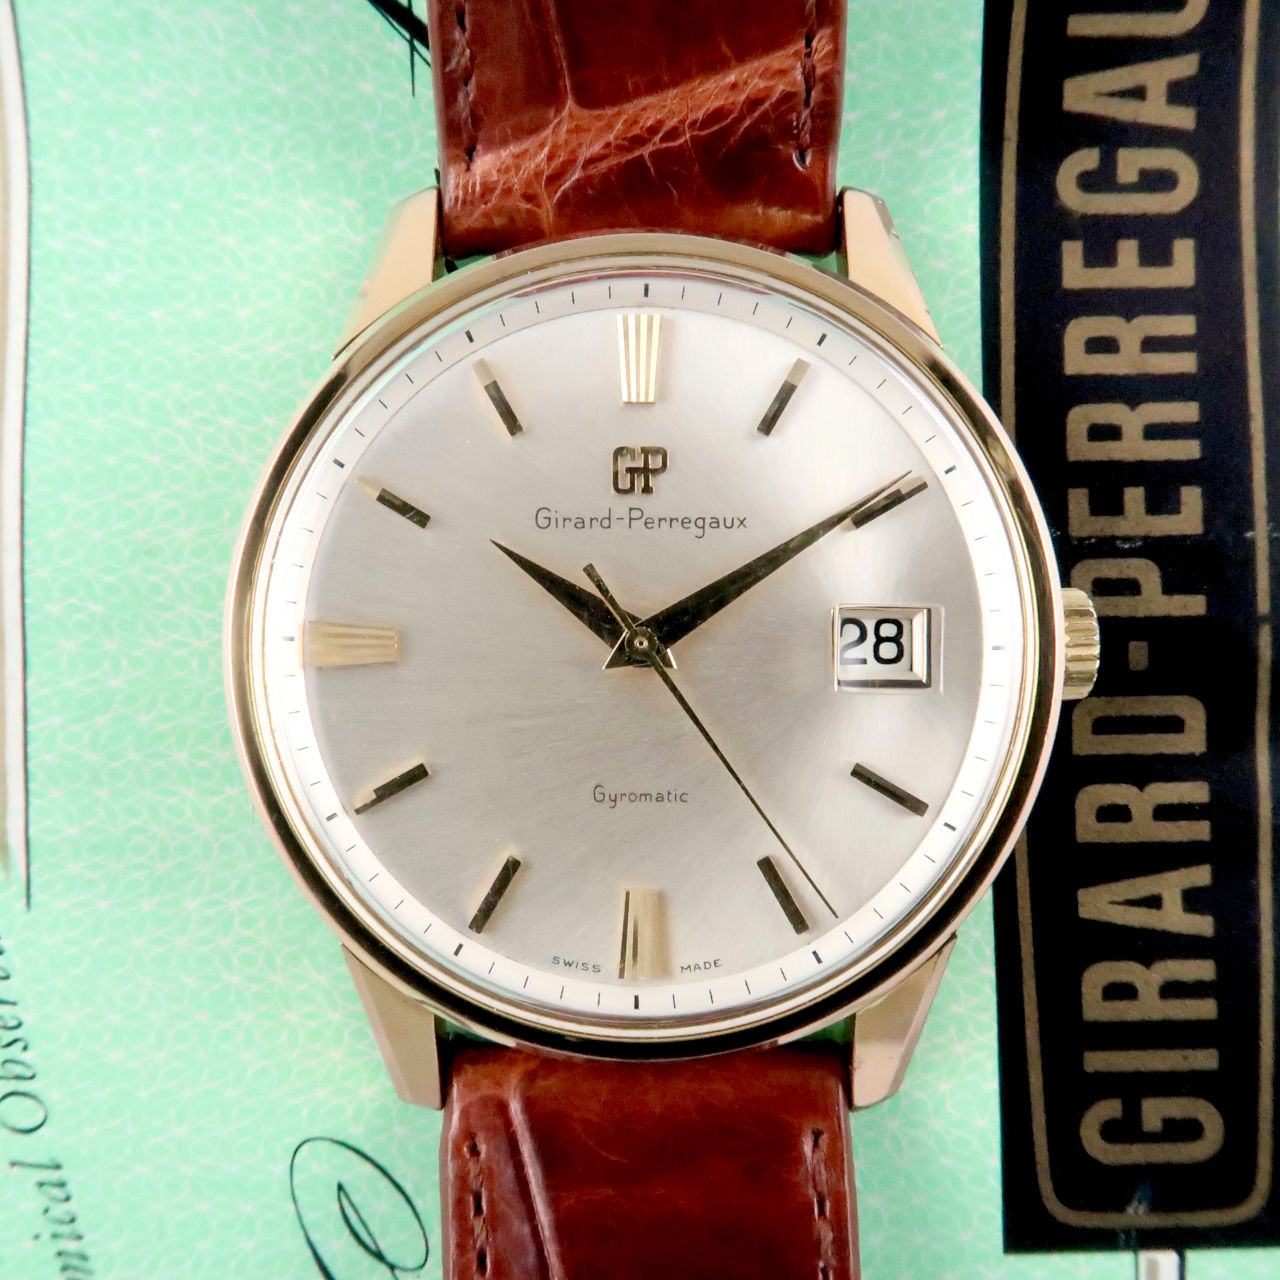 Girard-Perregaux Gyromatic gold plated & steel vintage wristwatch, circa 1968